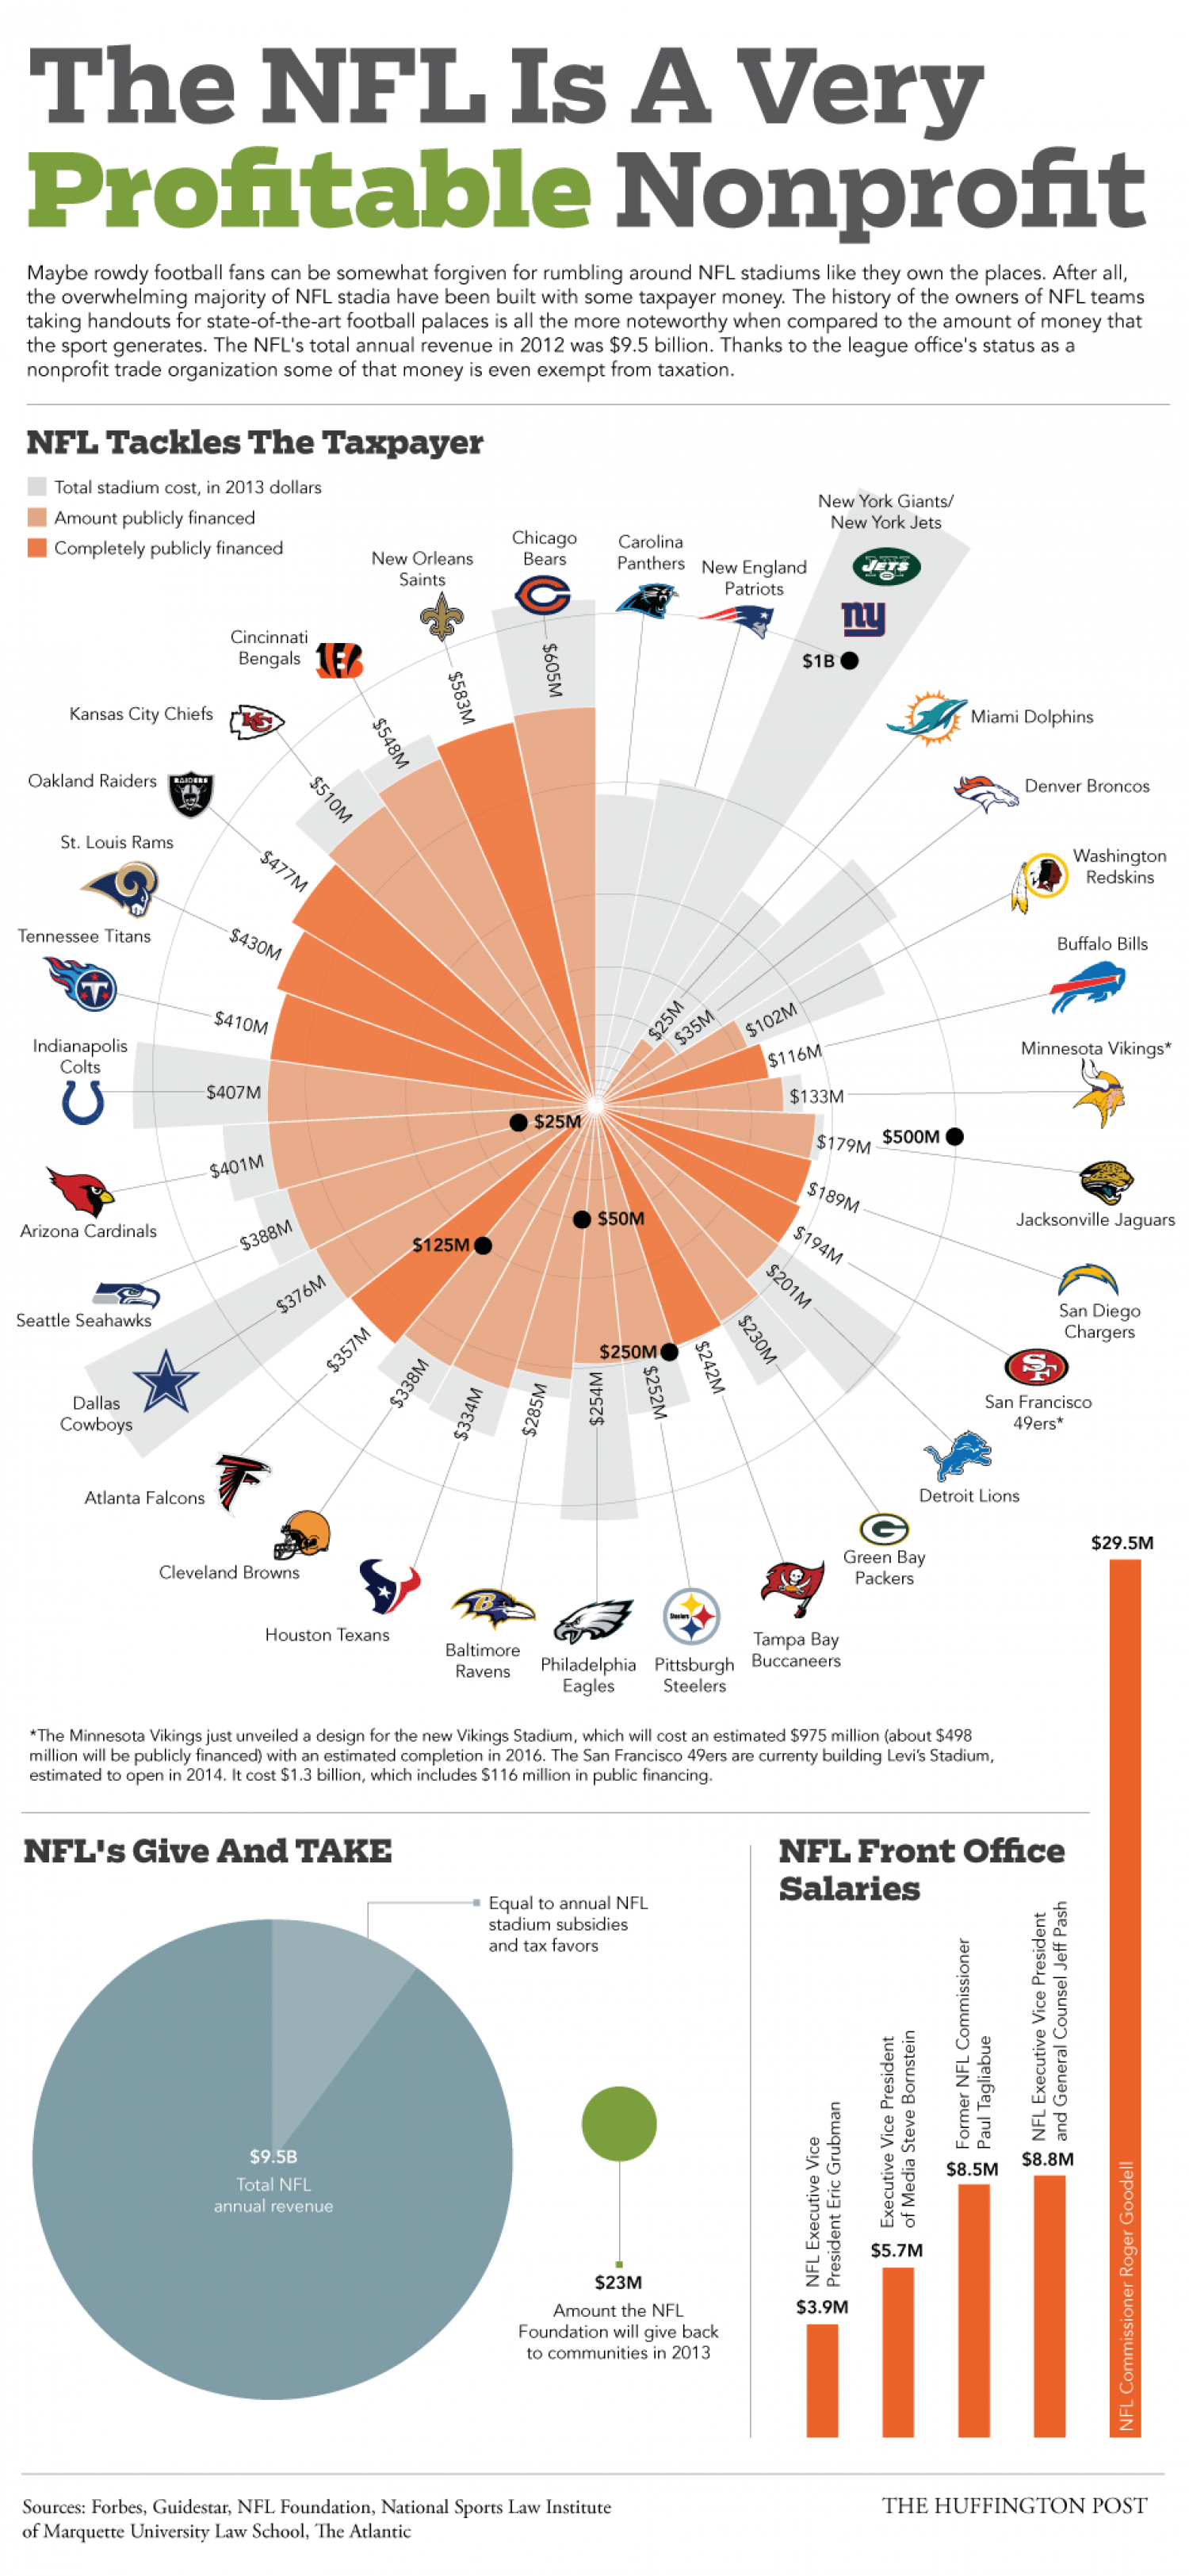 The NFL Is A Very Profitable Nonprofit Infographic